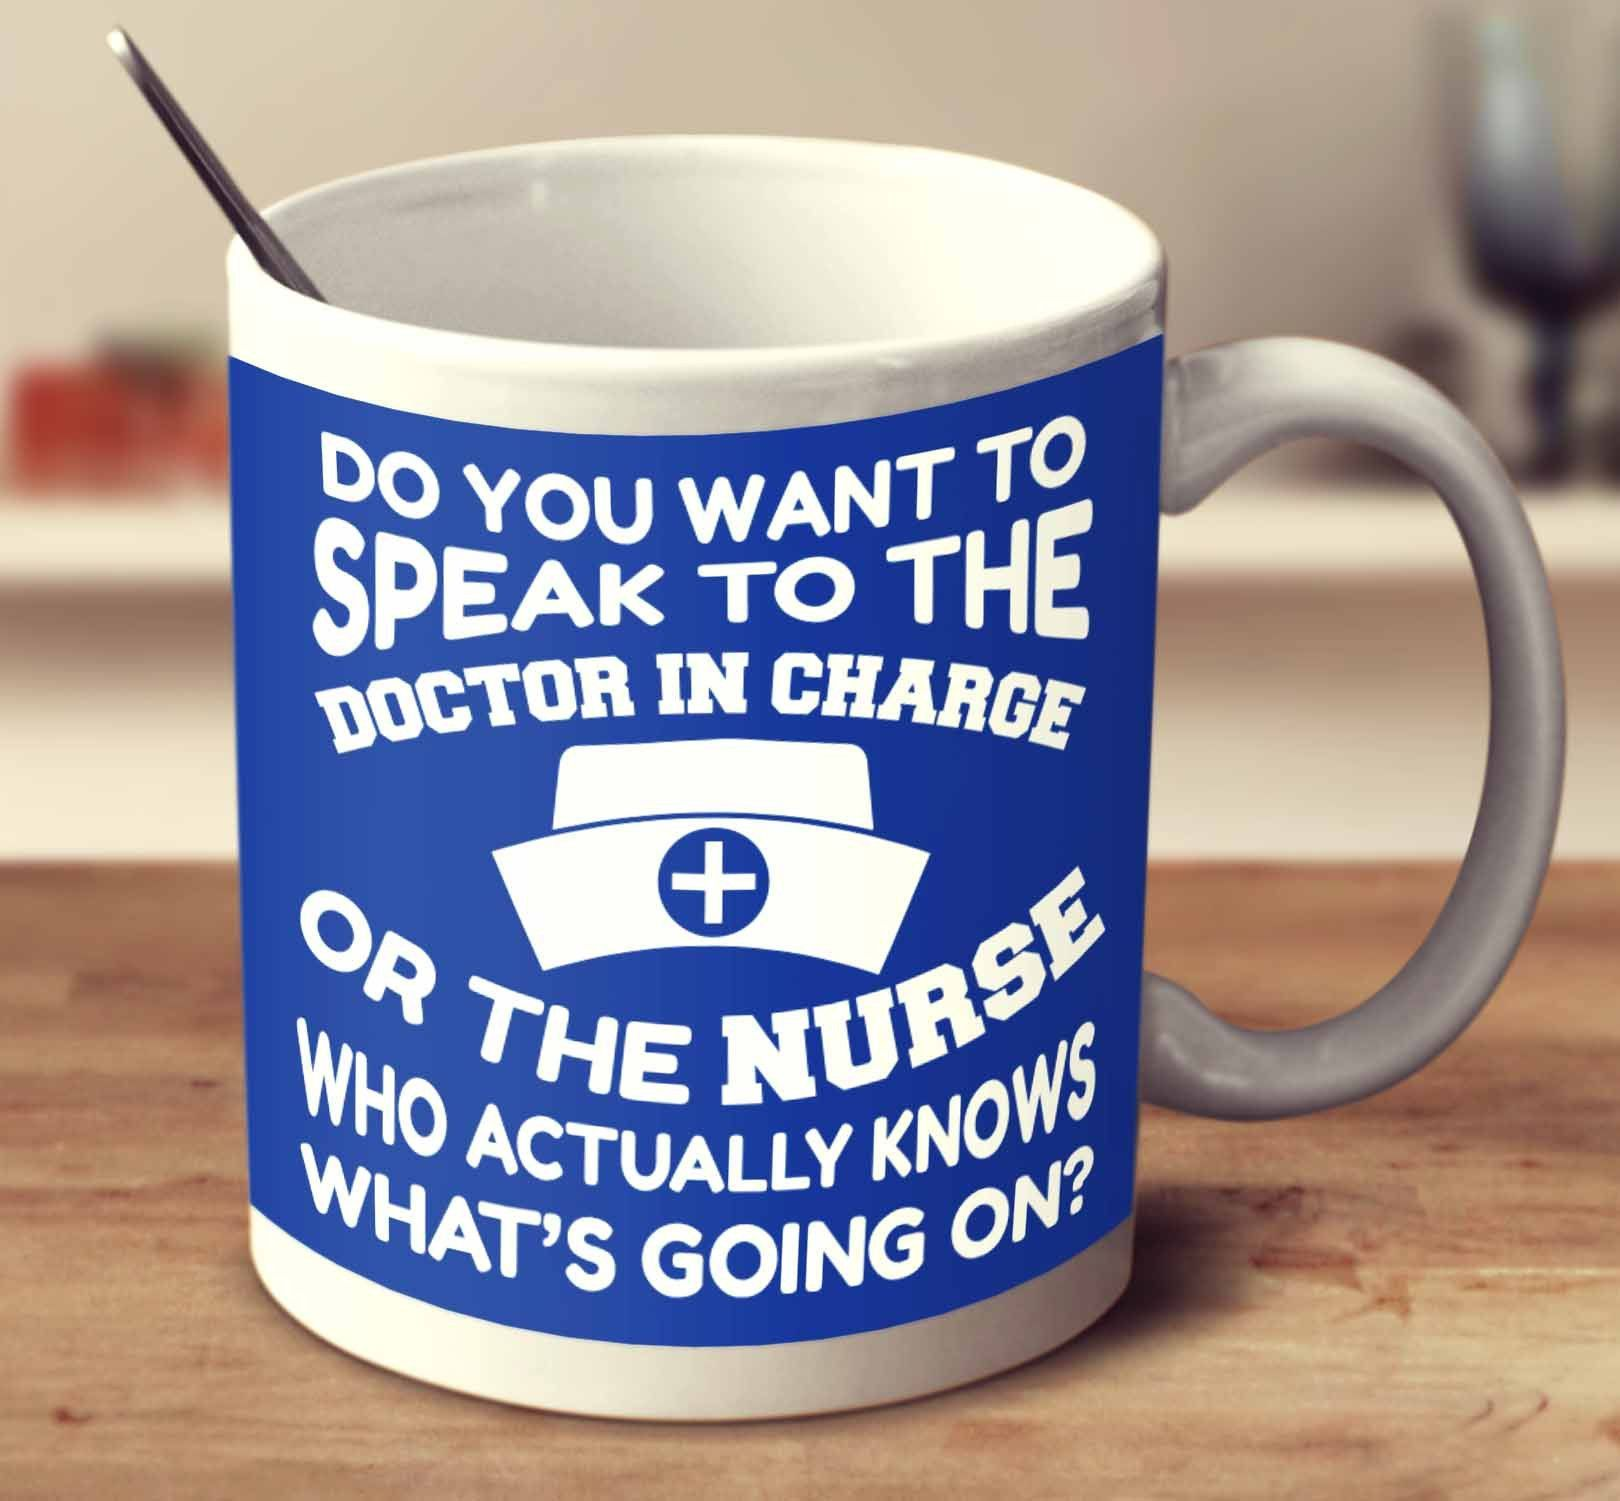 Do You Want To Speak To The Doctor In Charge Or The Nurse Who Actually Knows What's Going On